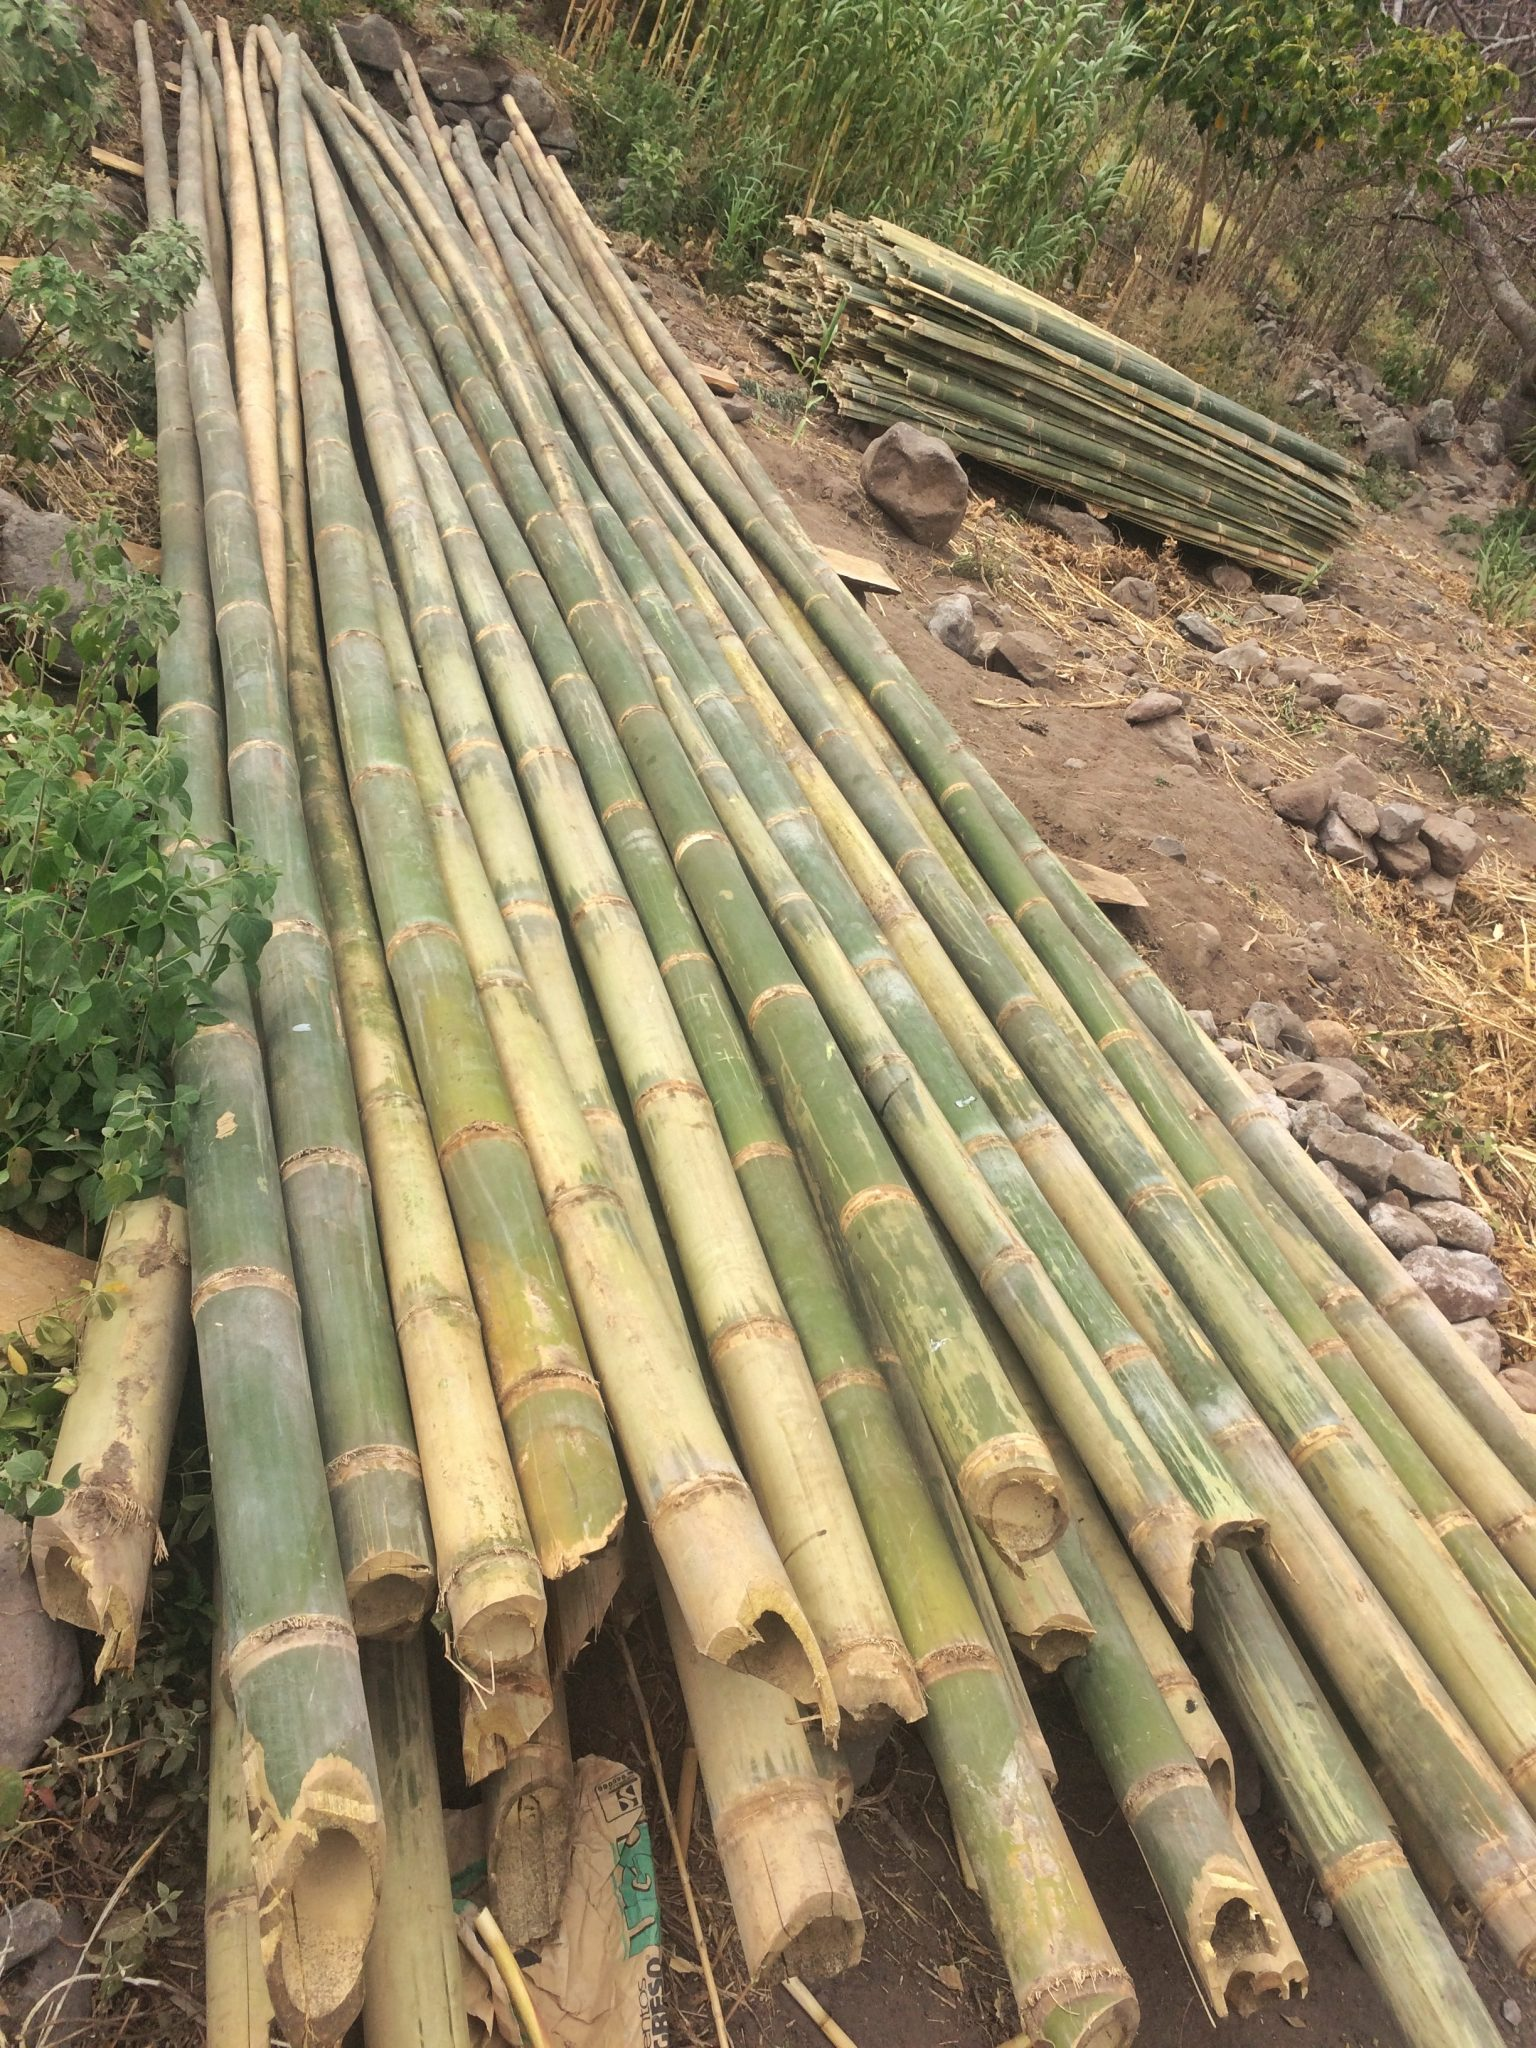 Stacks of bamboo for eco construction in our yoga retreat center ...